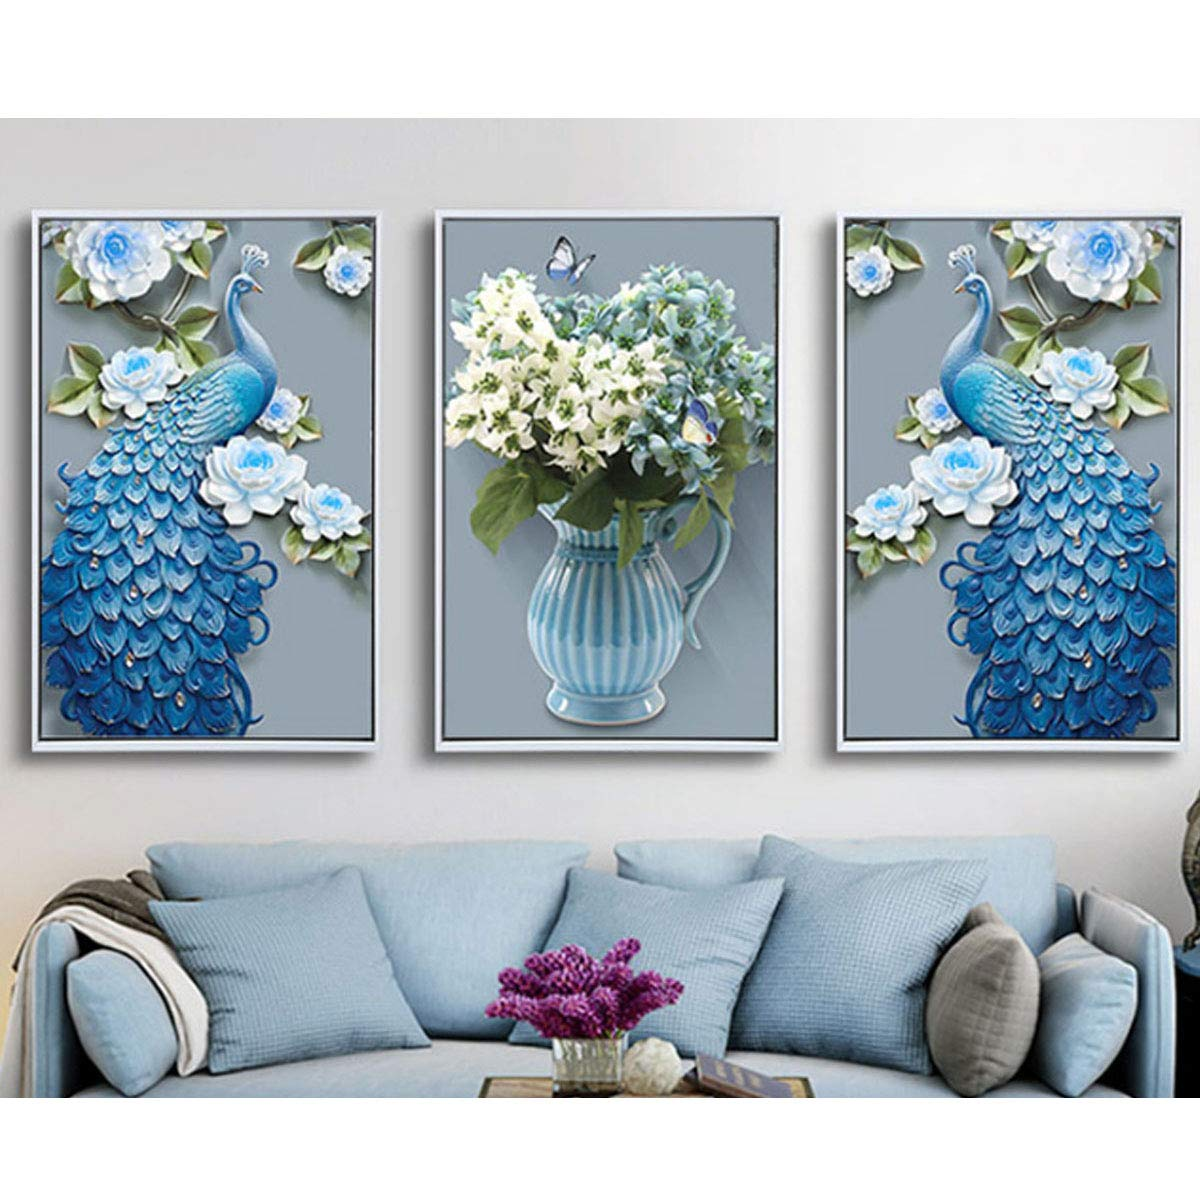 40x55cm Drunk Breeze Paint by Dimaond Kits for Adults Full Drills 16x22 Paint by Number Embroidery Kits with Diamonds for Home Wall Decor